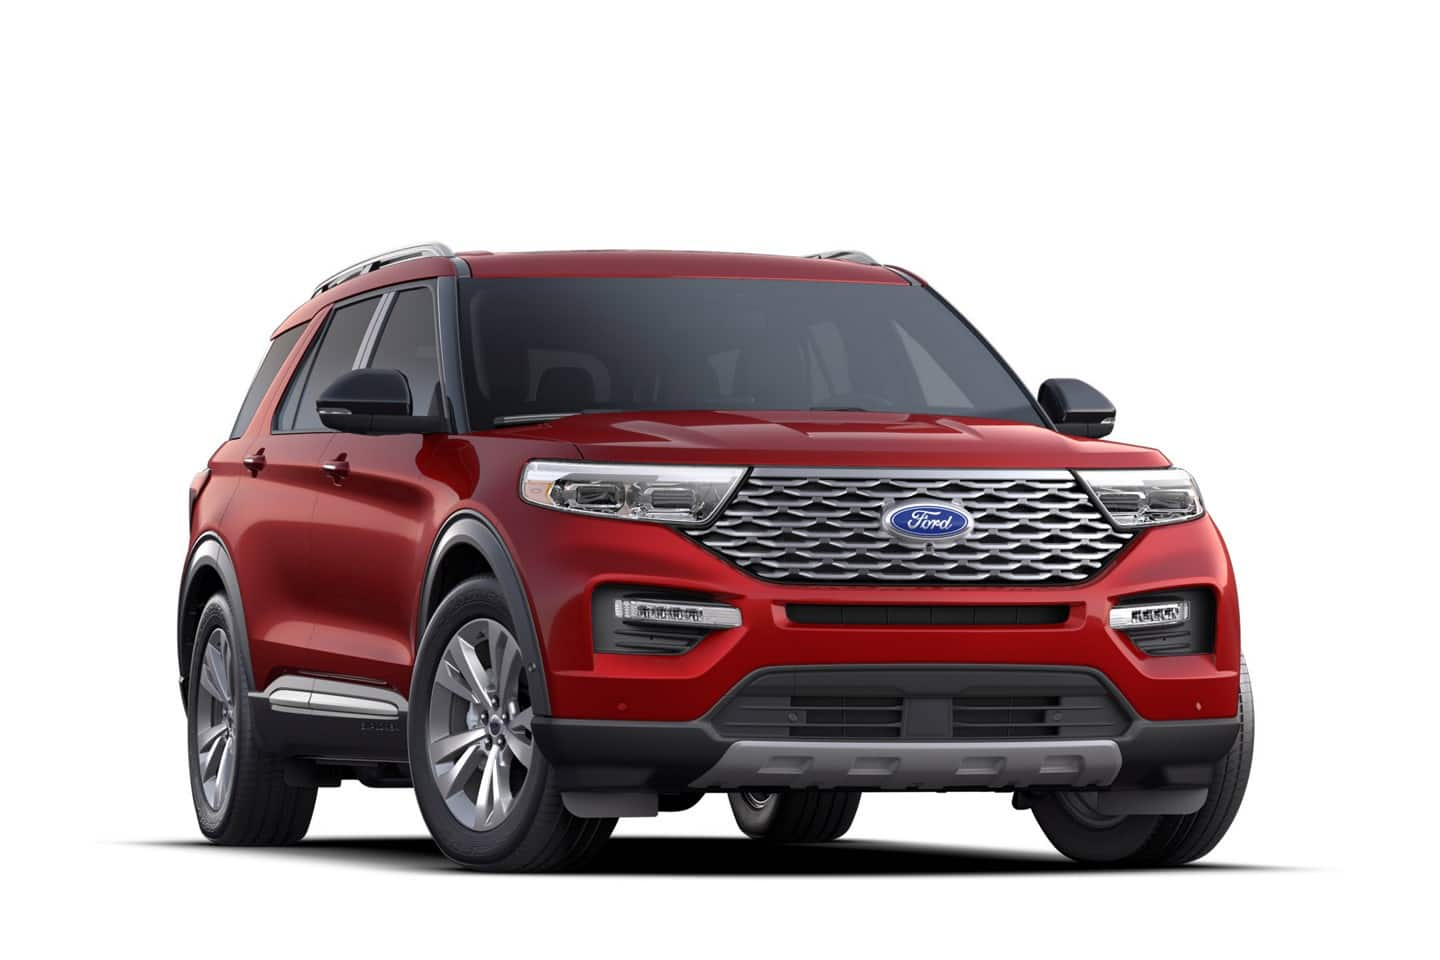 52 All New 2020 Ford Explorer Availability Overview